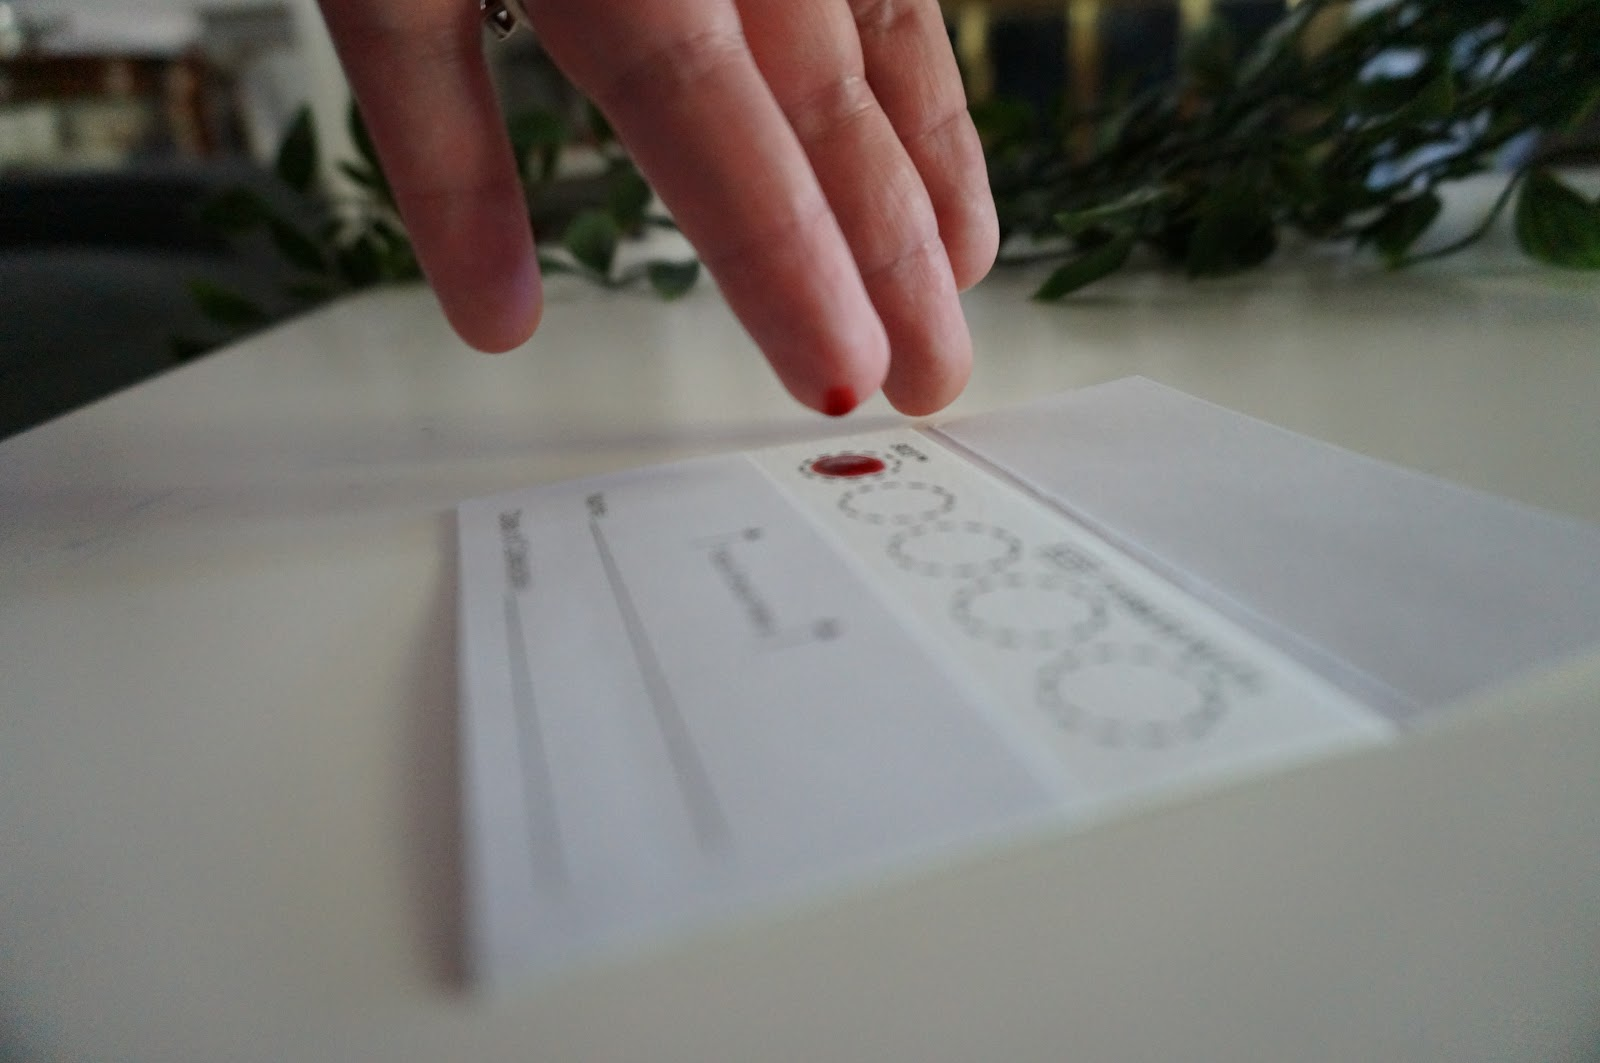 Blood droplet falling onto collection card for thyroid blood test sample